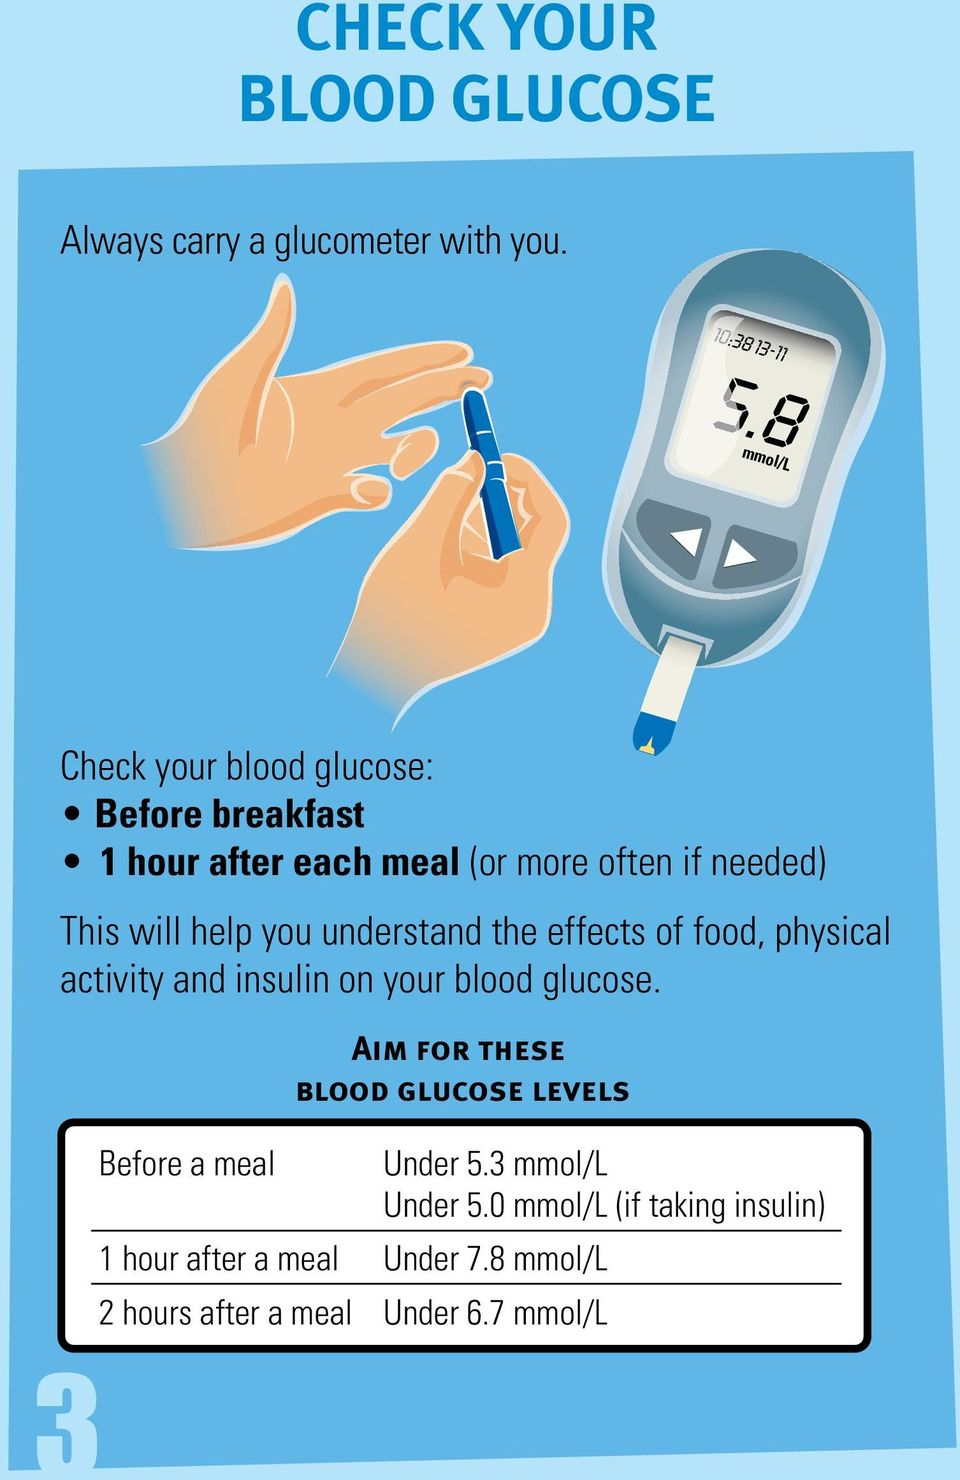 help you understand the effects of food, physical activity and insulin on your blood glucose.